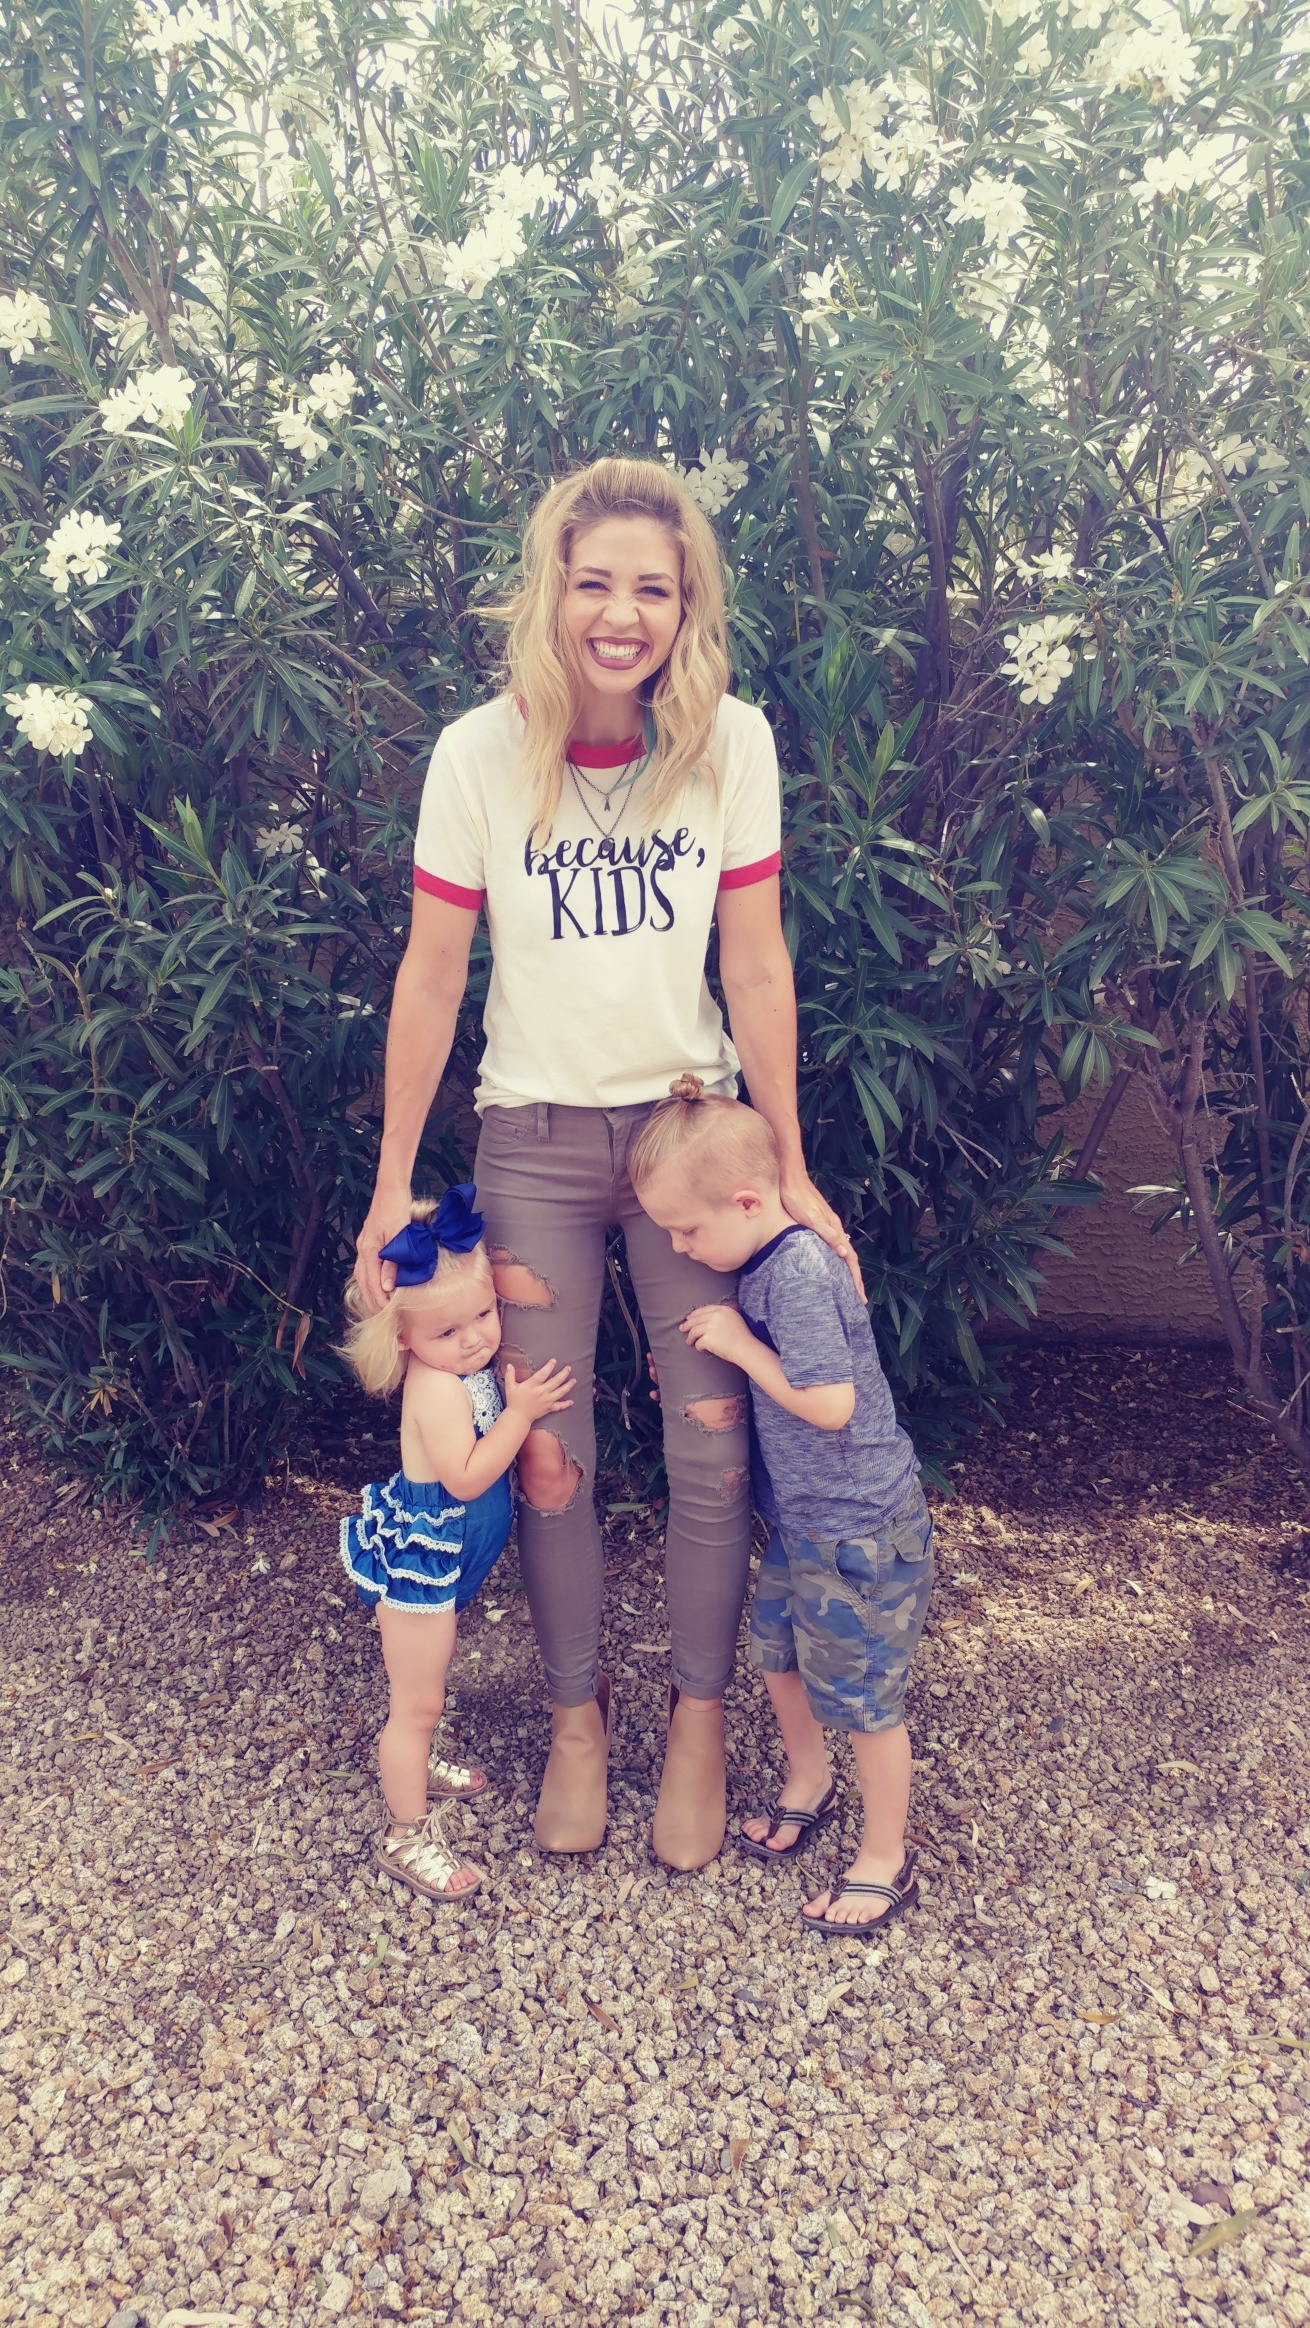 Victoria Shipman - How One Mom Juggles Two Kids and a Stylish Wardrobe - The Style Shop by Sandi Mele